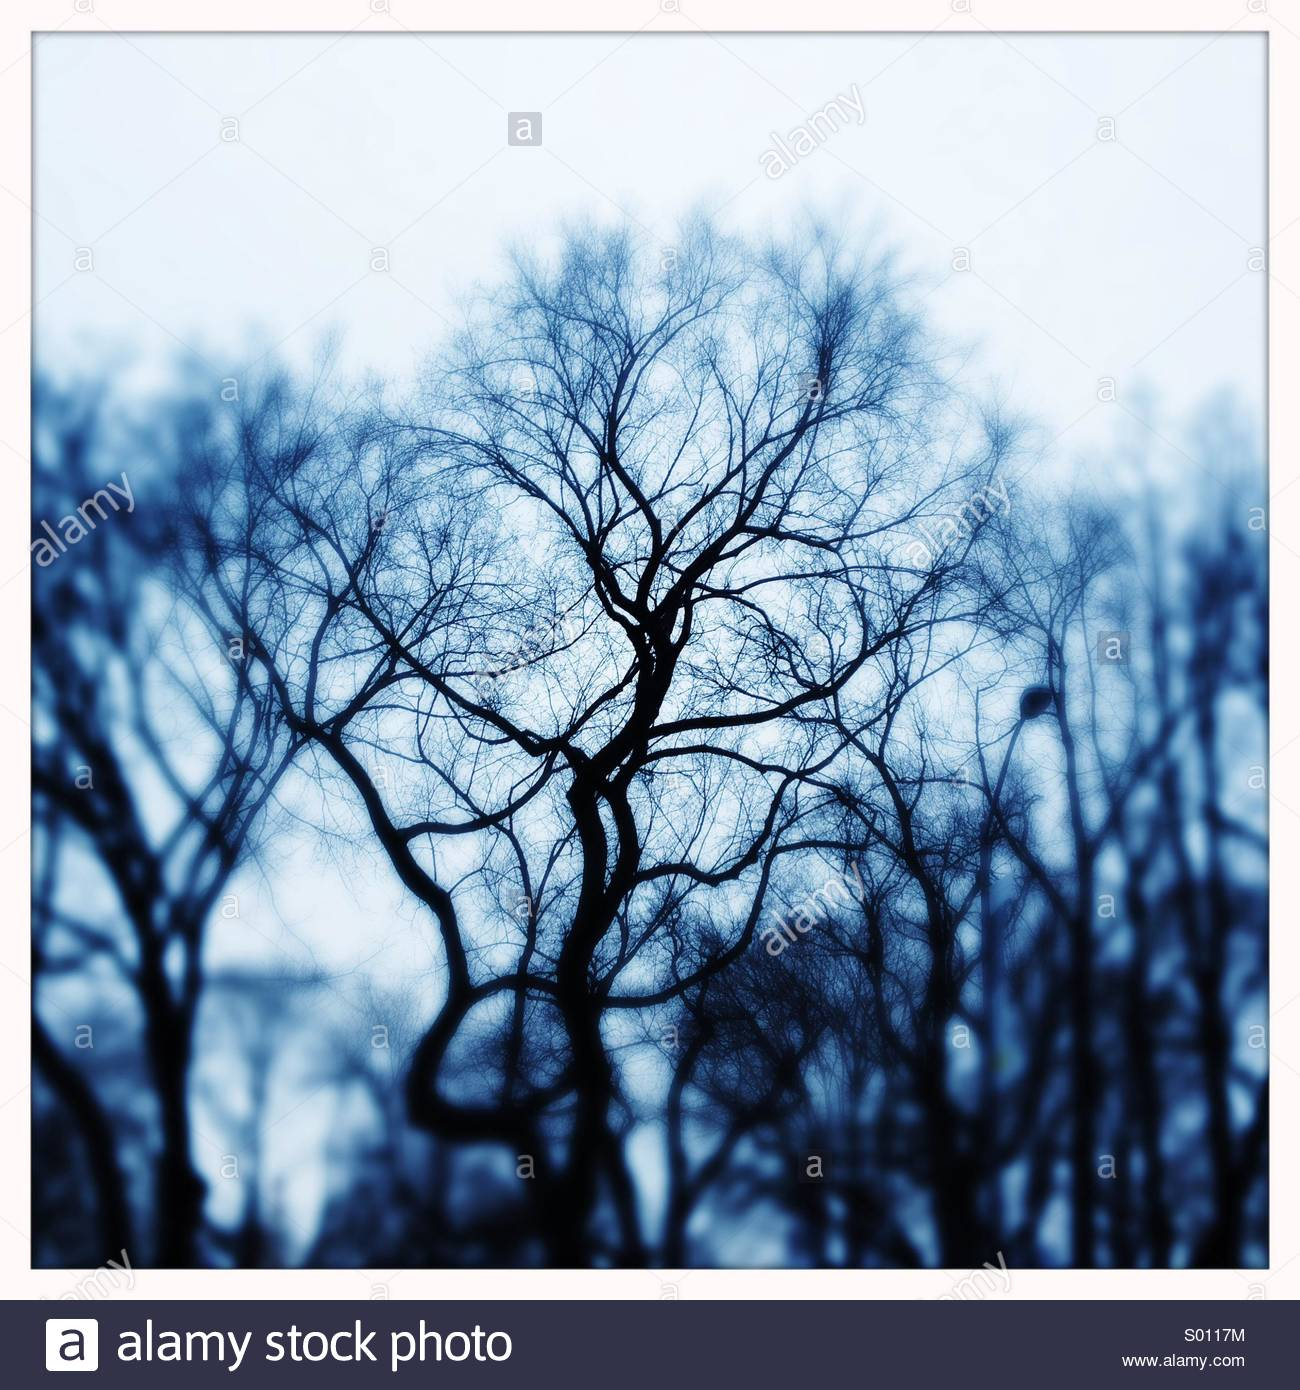 Bare winter trees - Stock Image